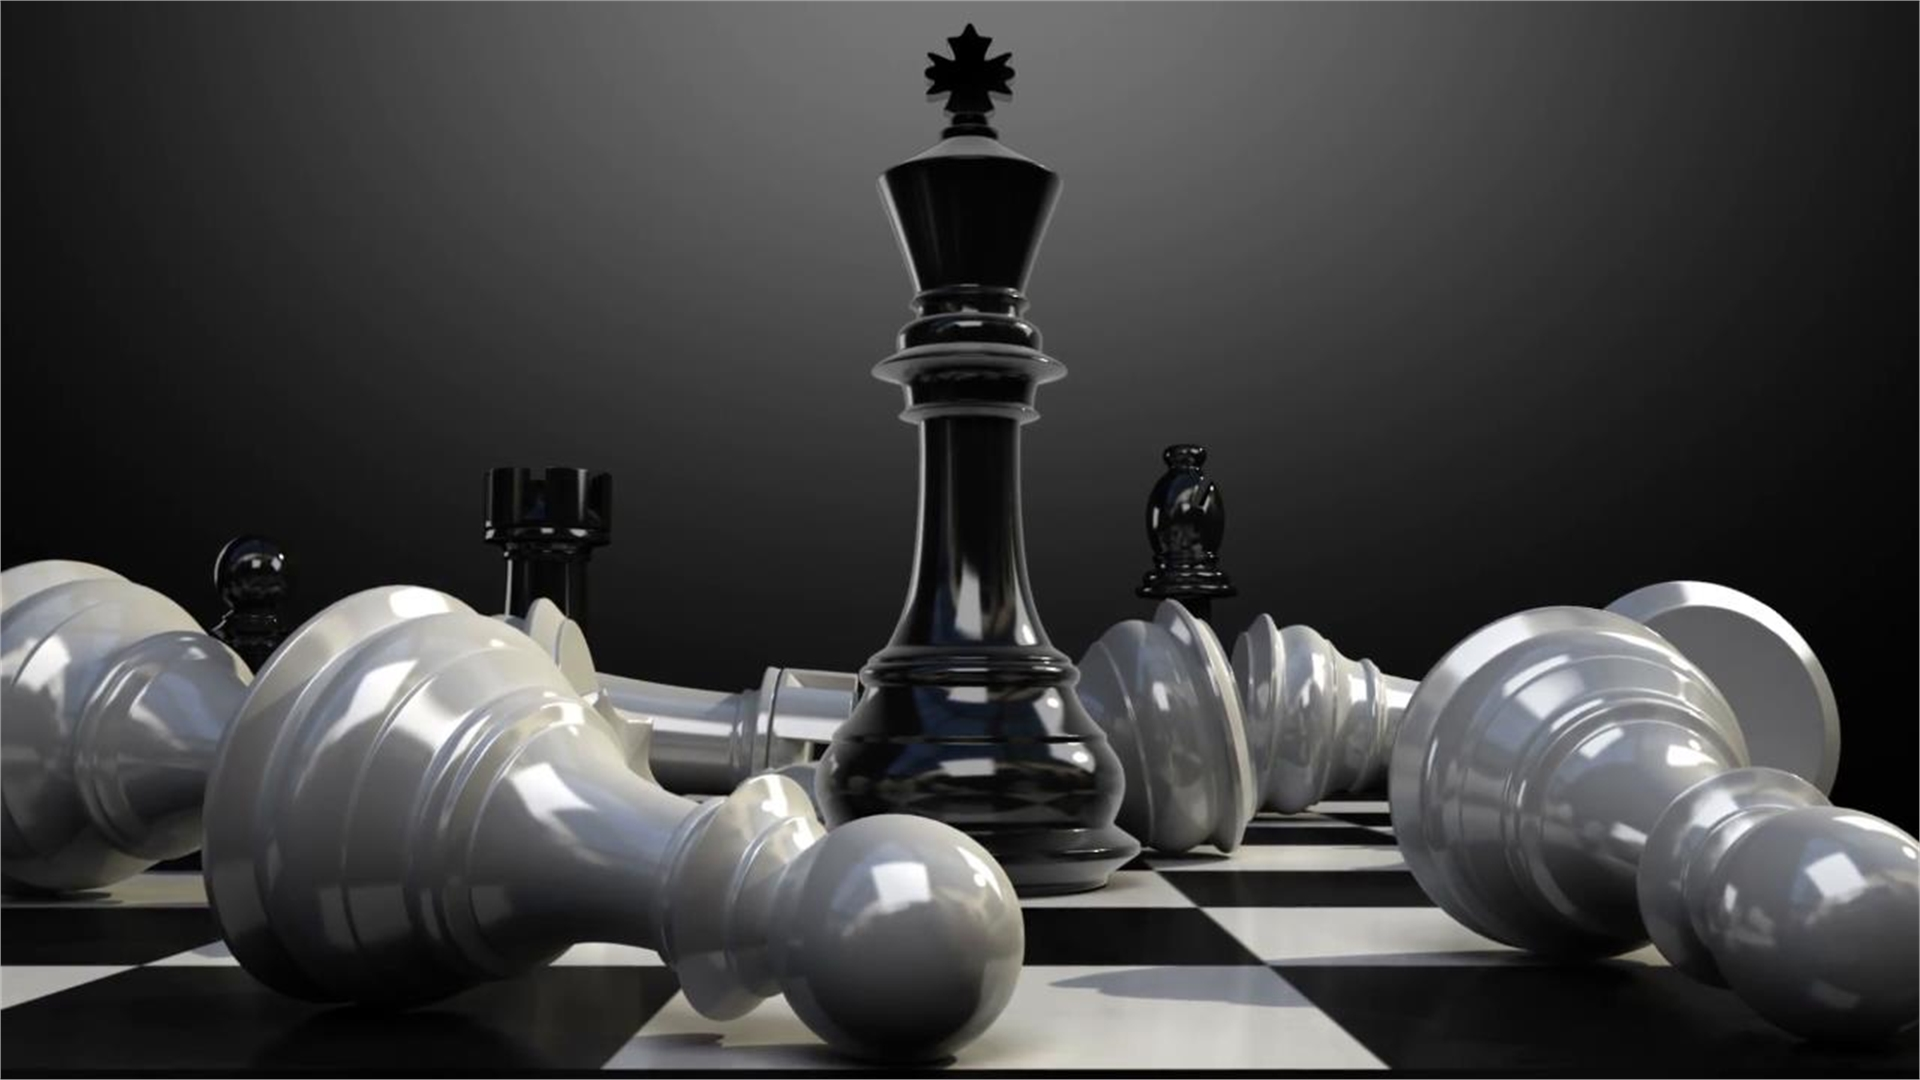 #iSUlation - Chess Society: Introduction